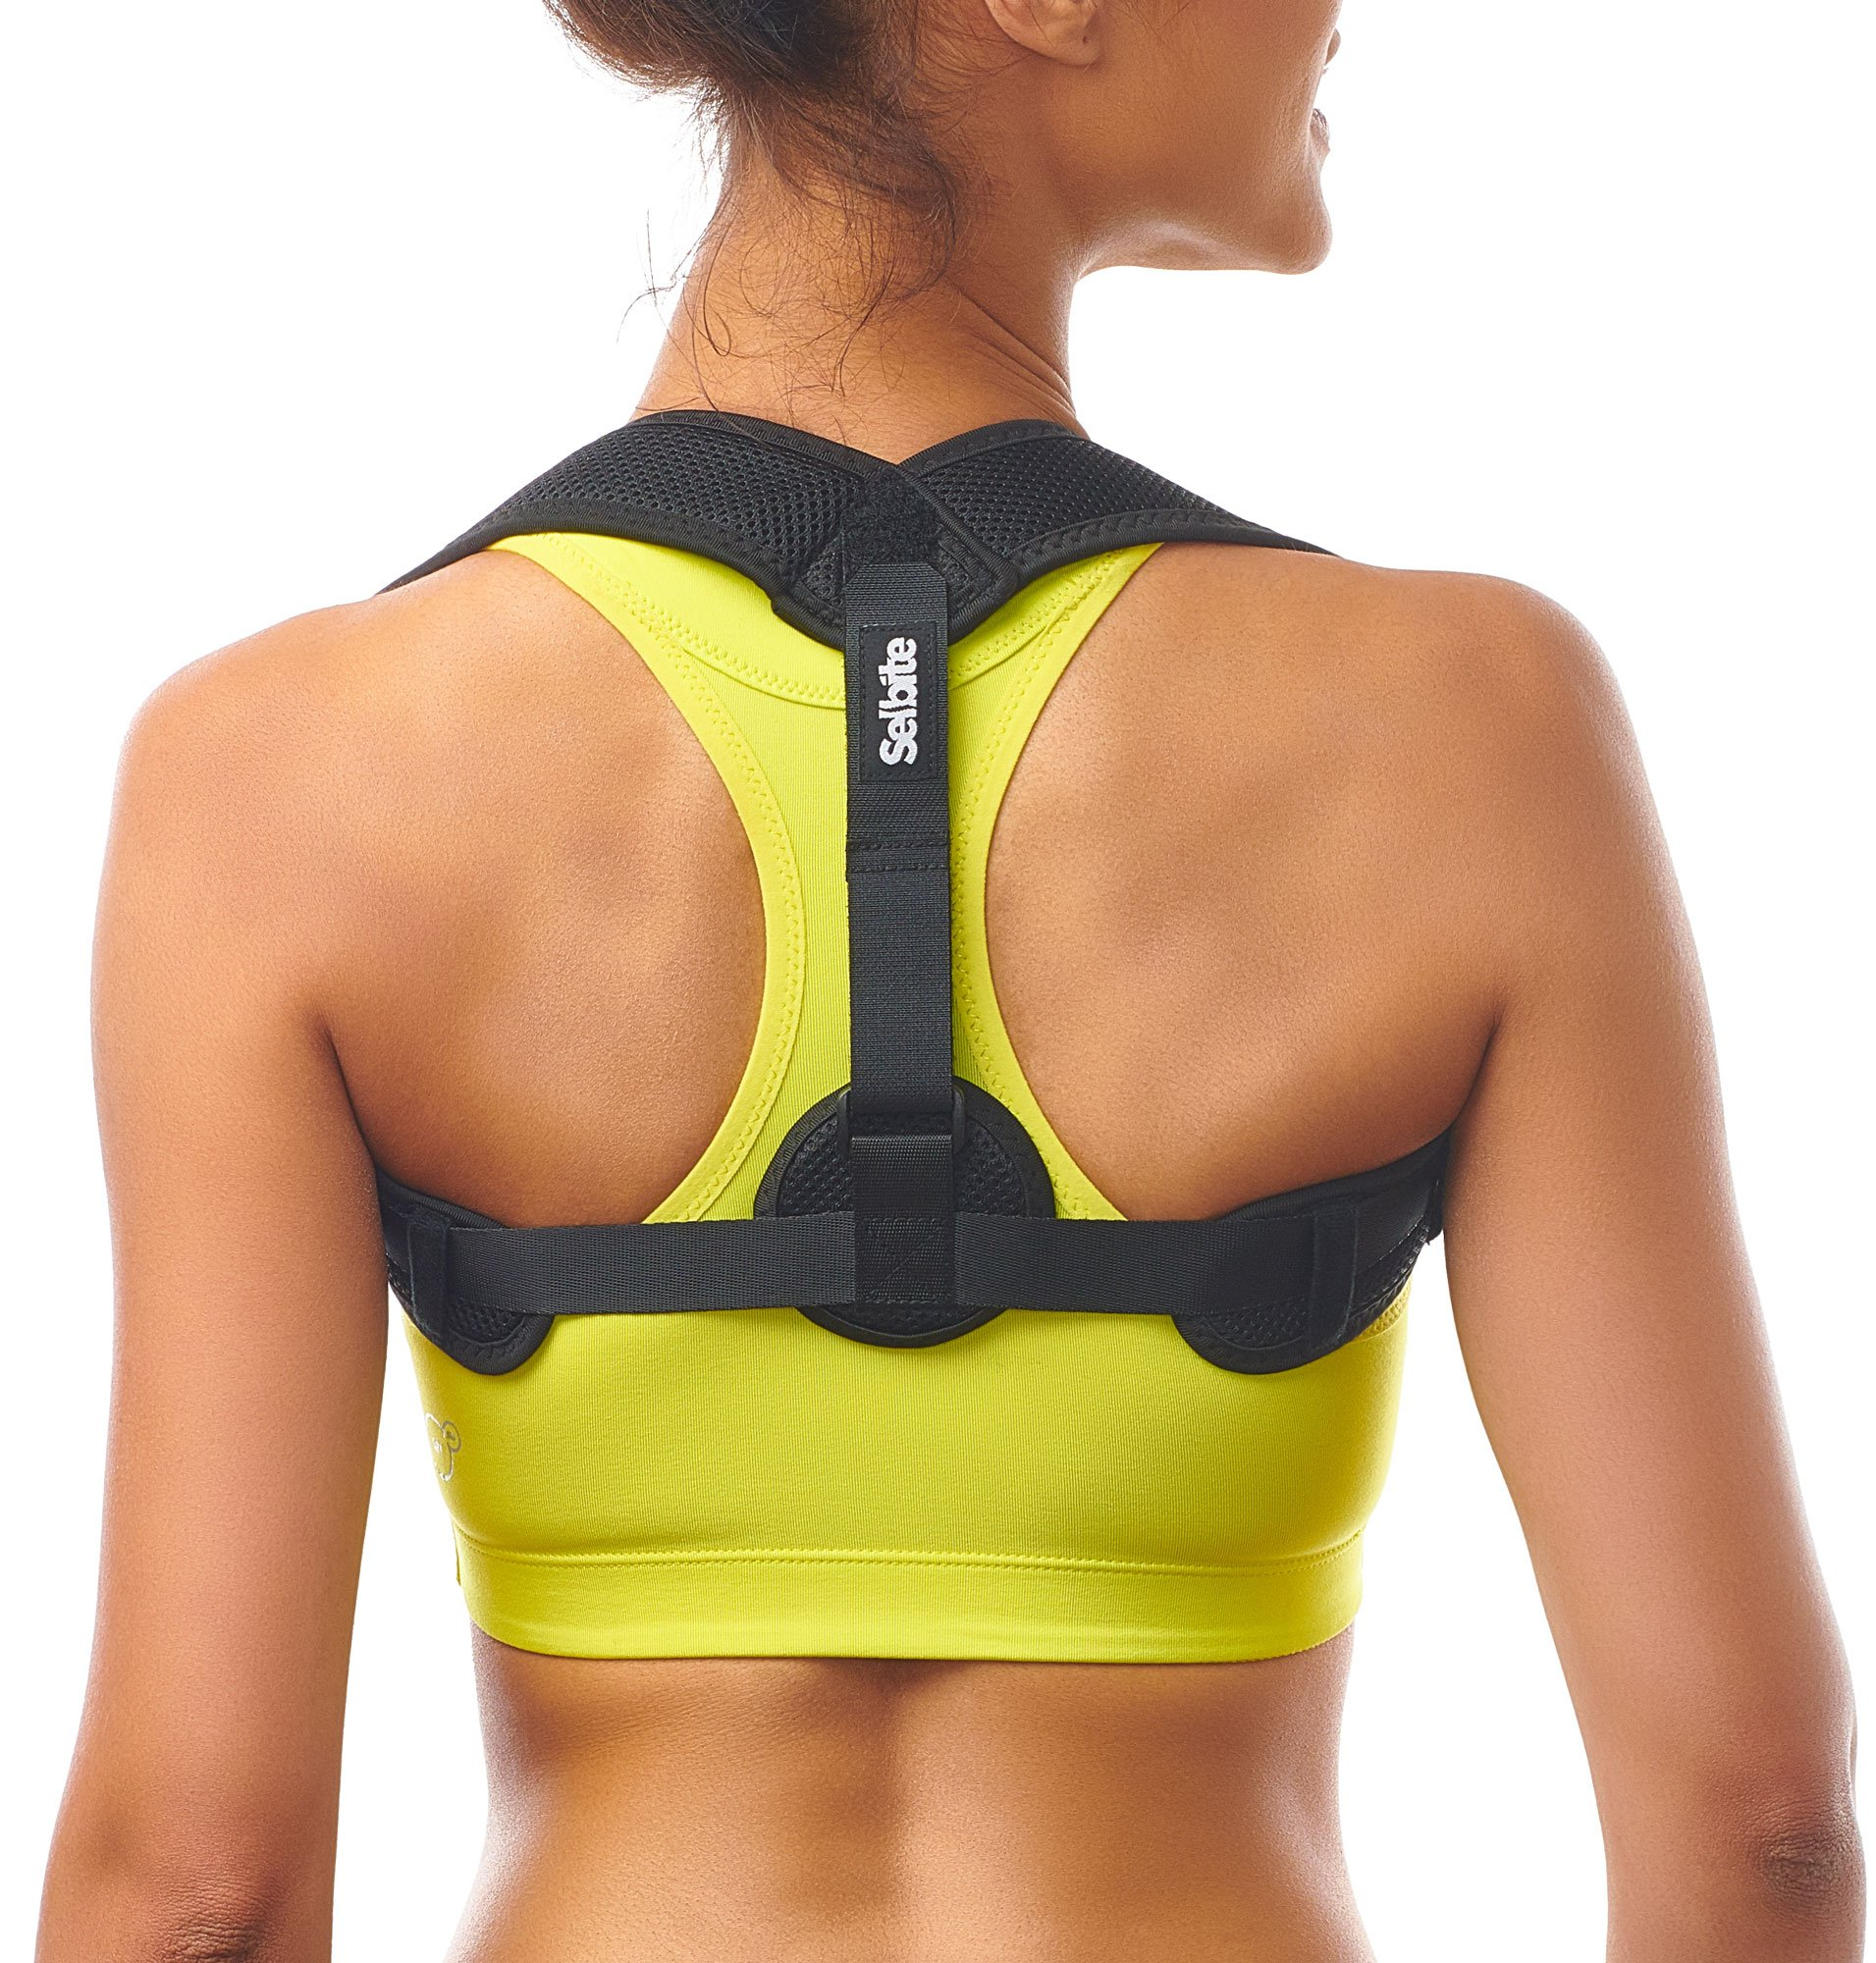 Posture Corrector for Women Men - Adjustable Back Straightener Posture Brace - Discreet Back Brace for Upper Back Pain Relief - Comfortable Posture Trainer for Spinal Alignment & Posture Support